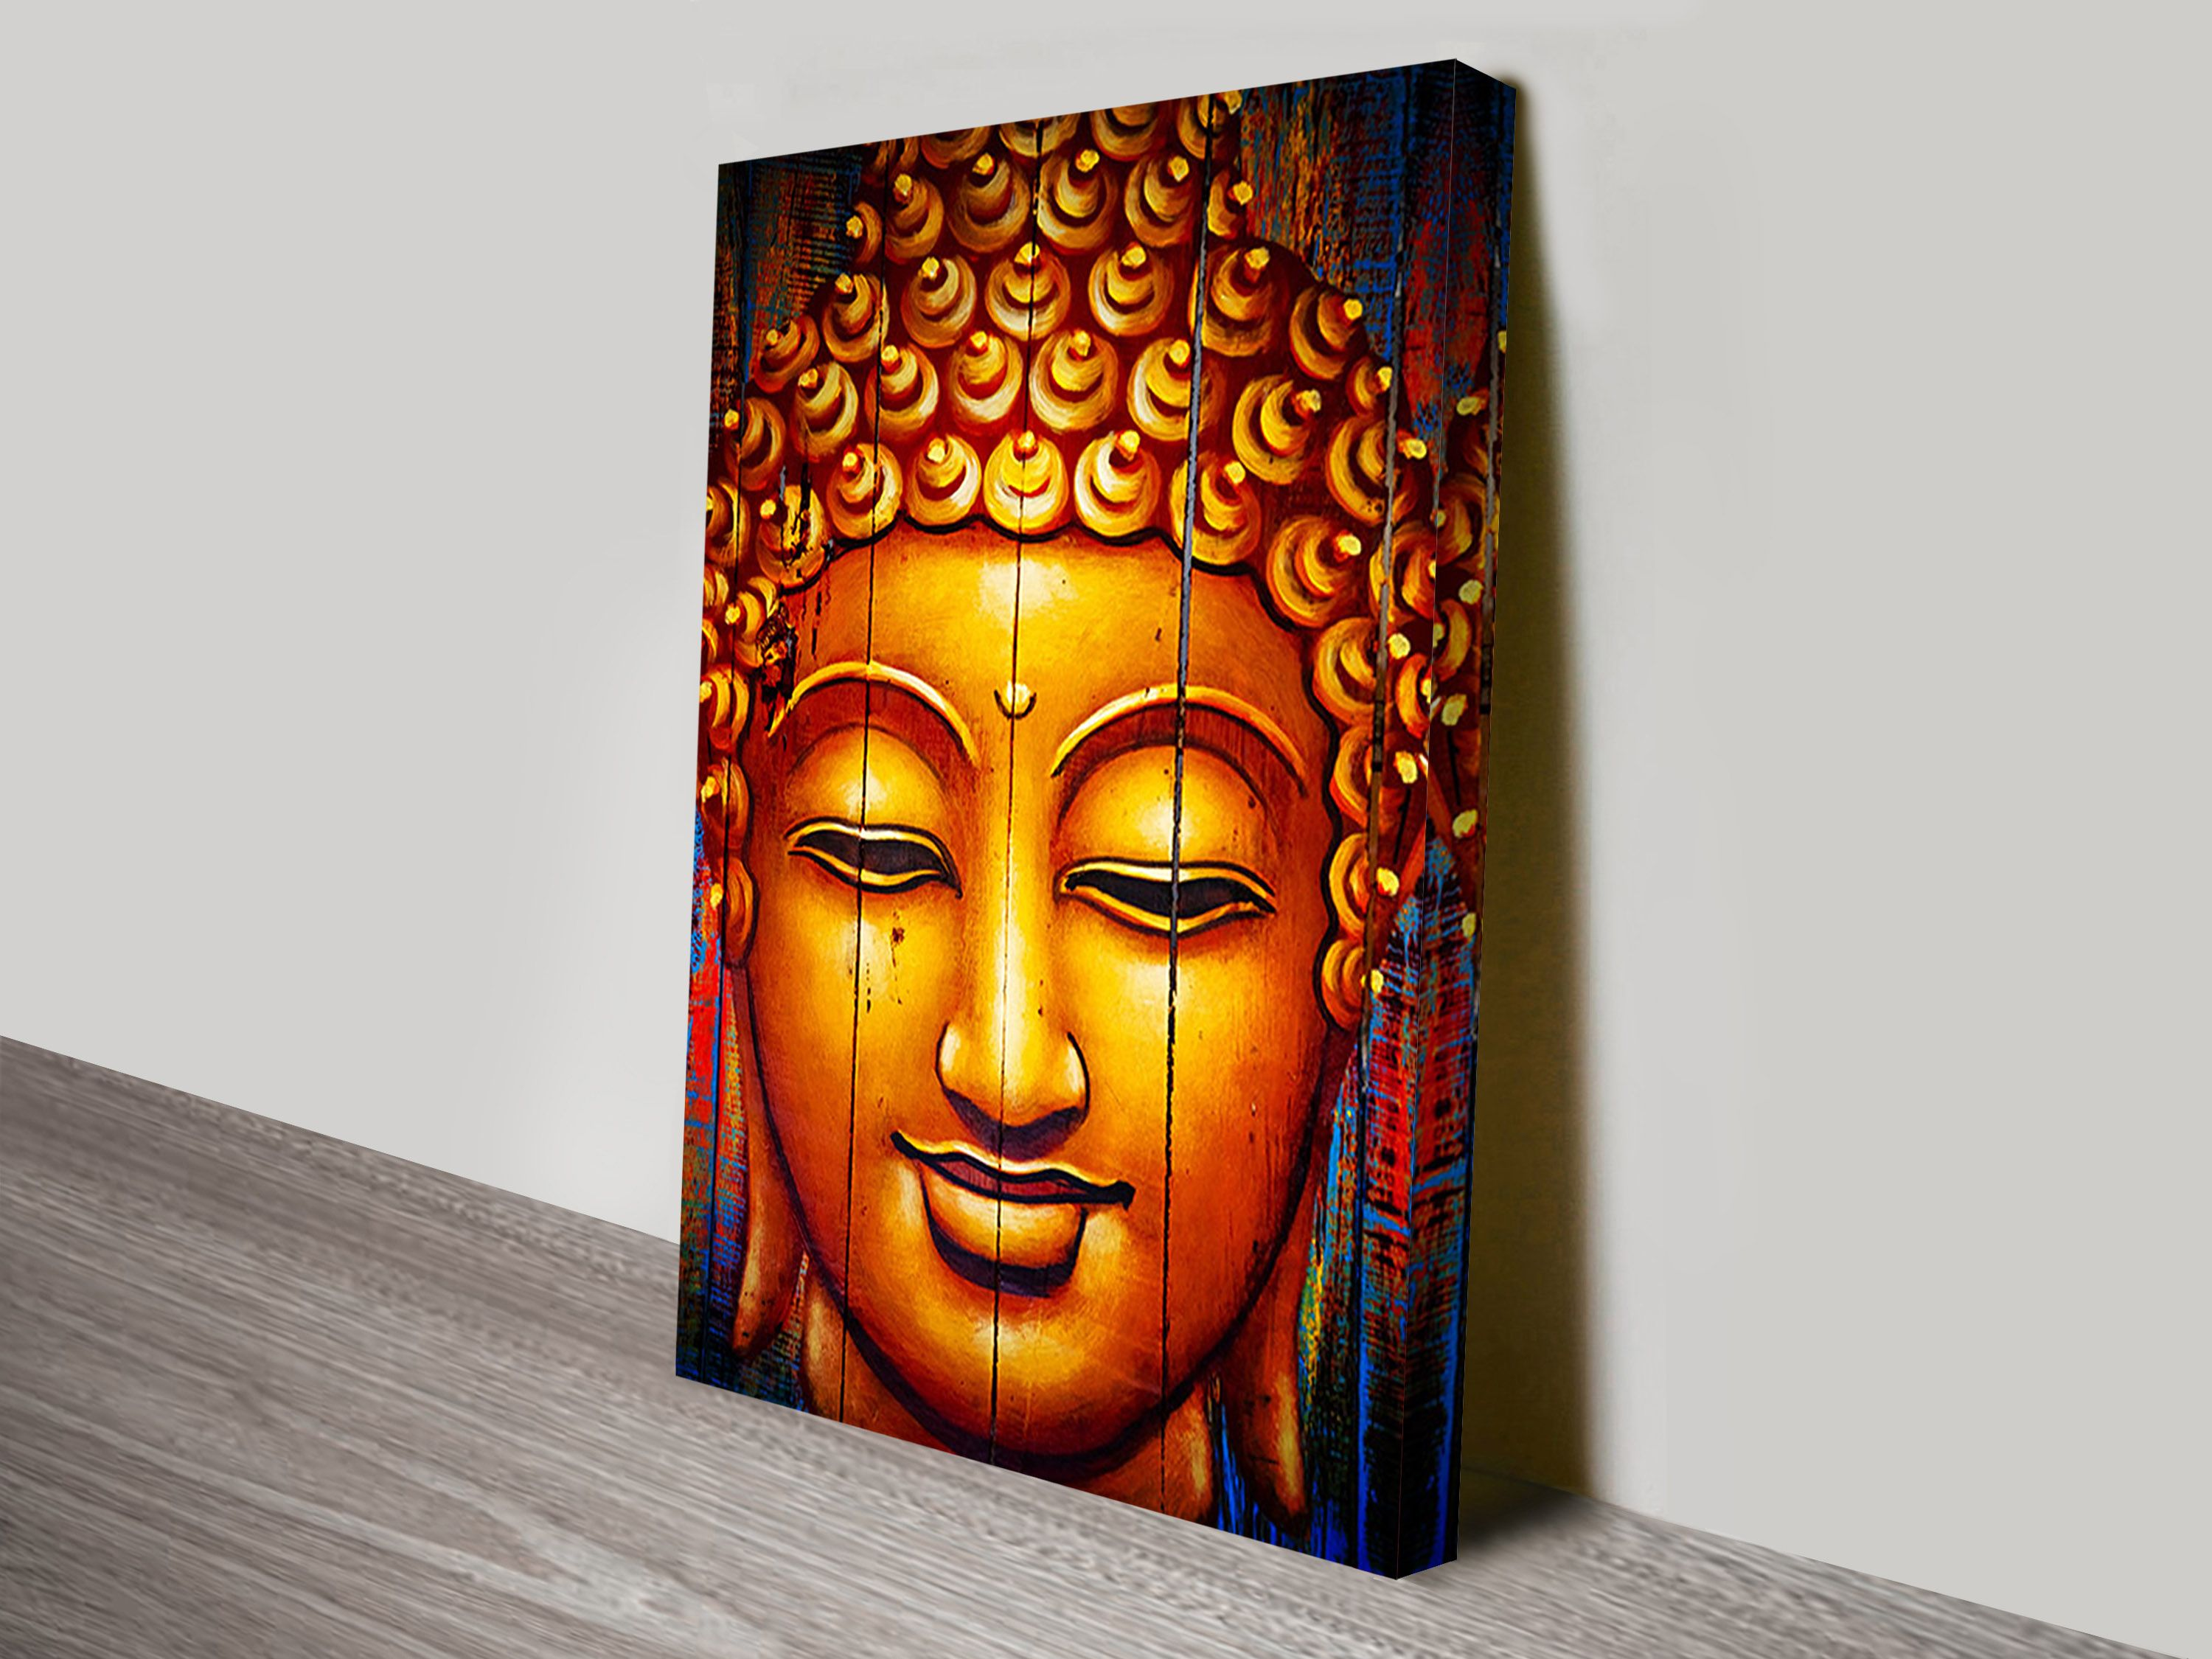 Buy Buddha Painting Print Wall Art Pictures Online Sydney Australia Buddha Canvas Buddha Art Painting Buddha Painting Canvas